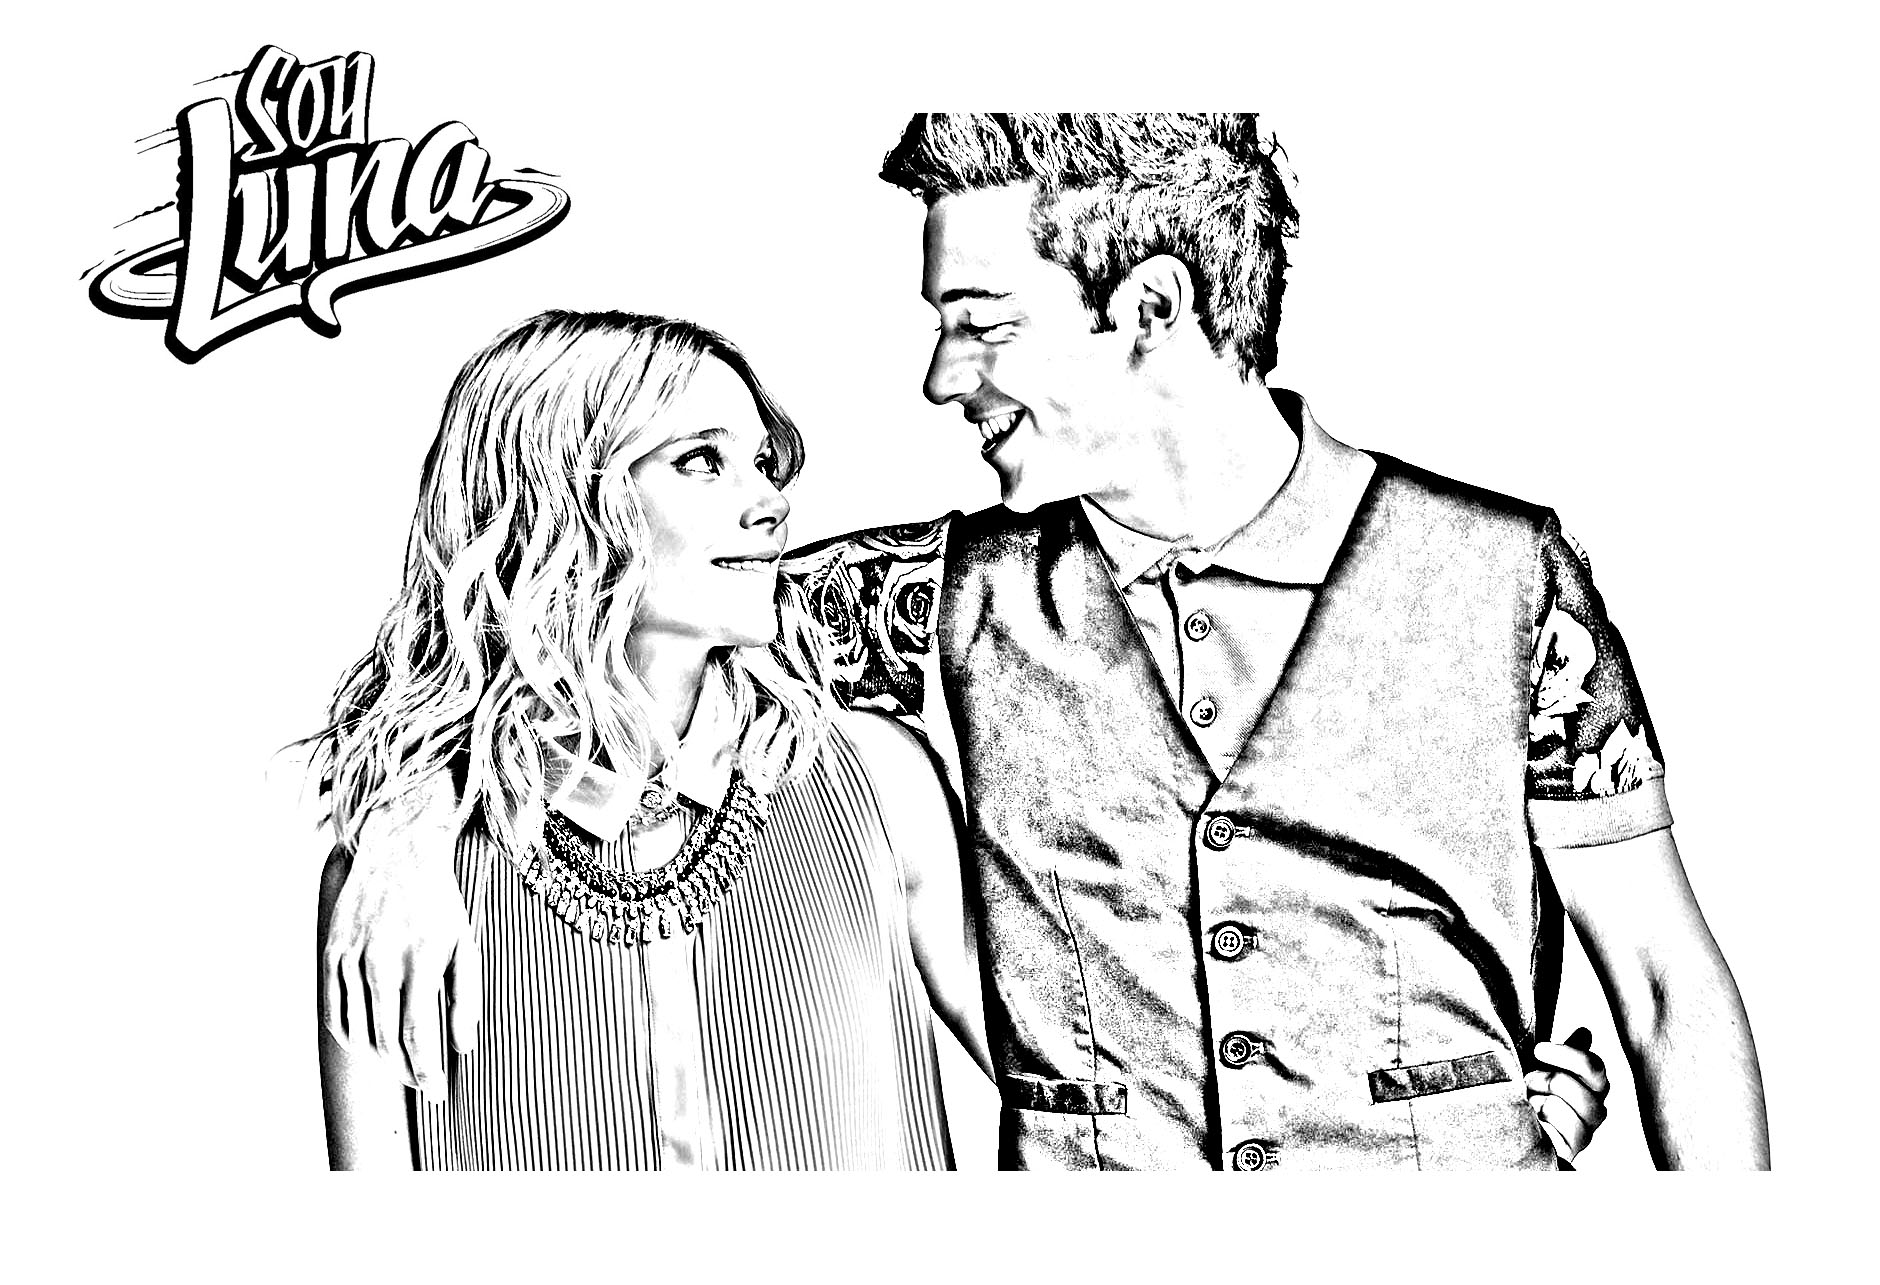 Simple Soy Luna coloring page for children